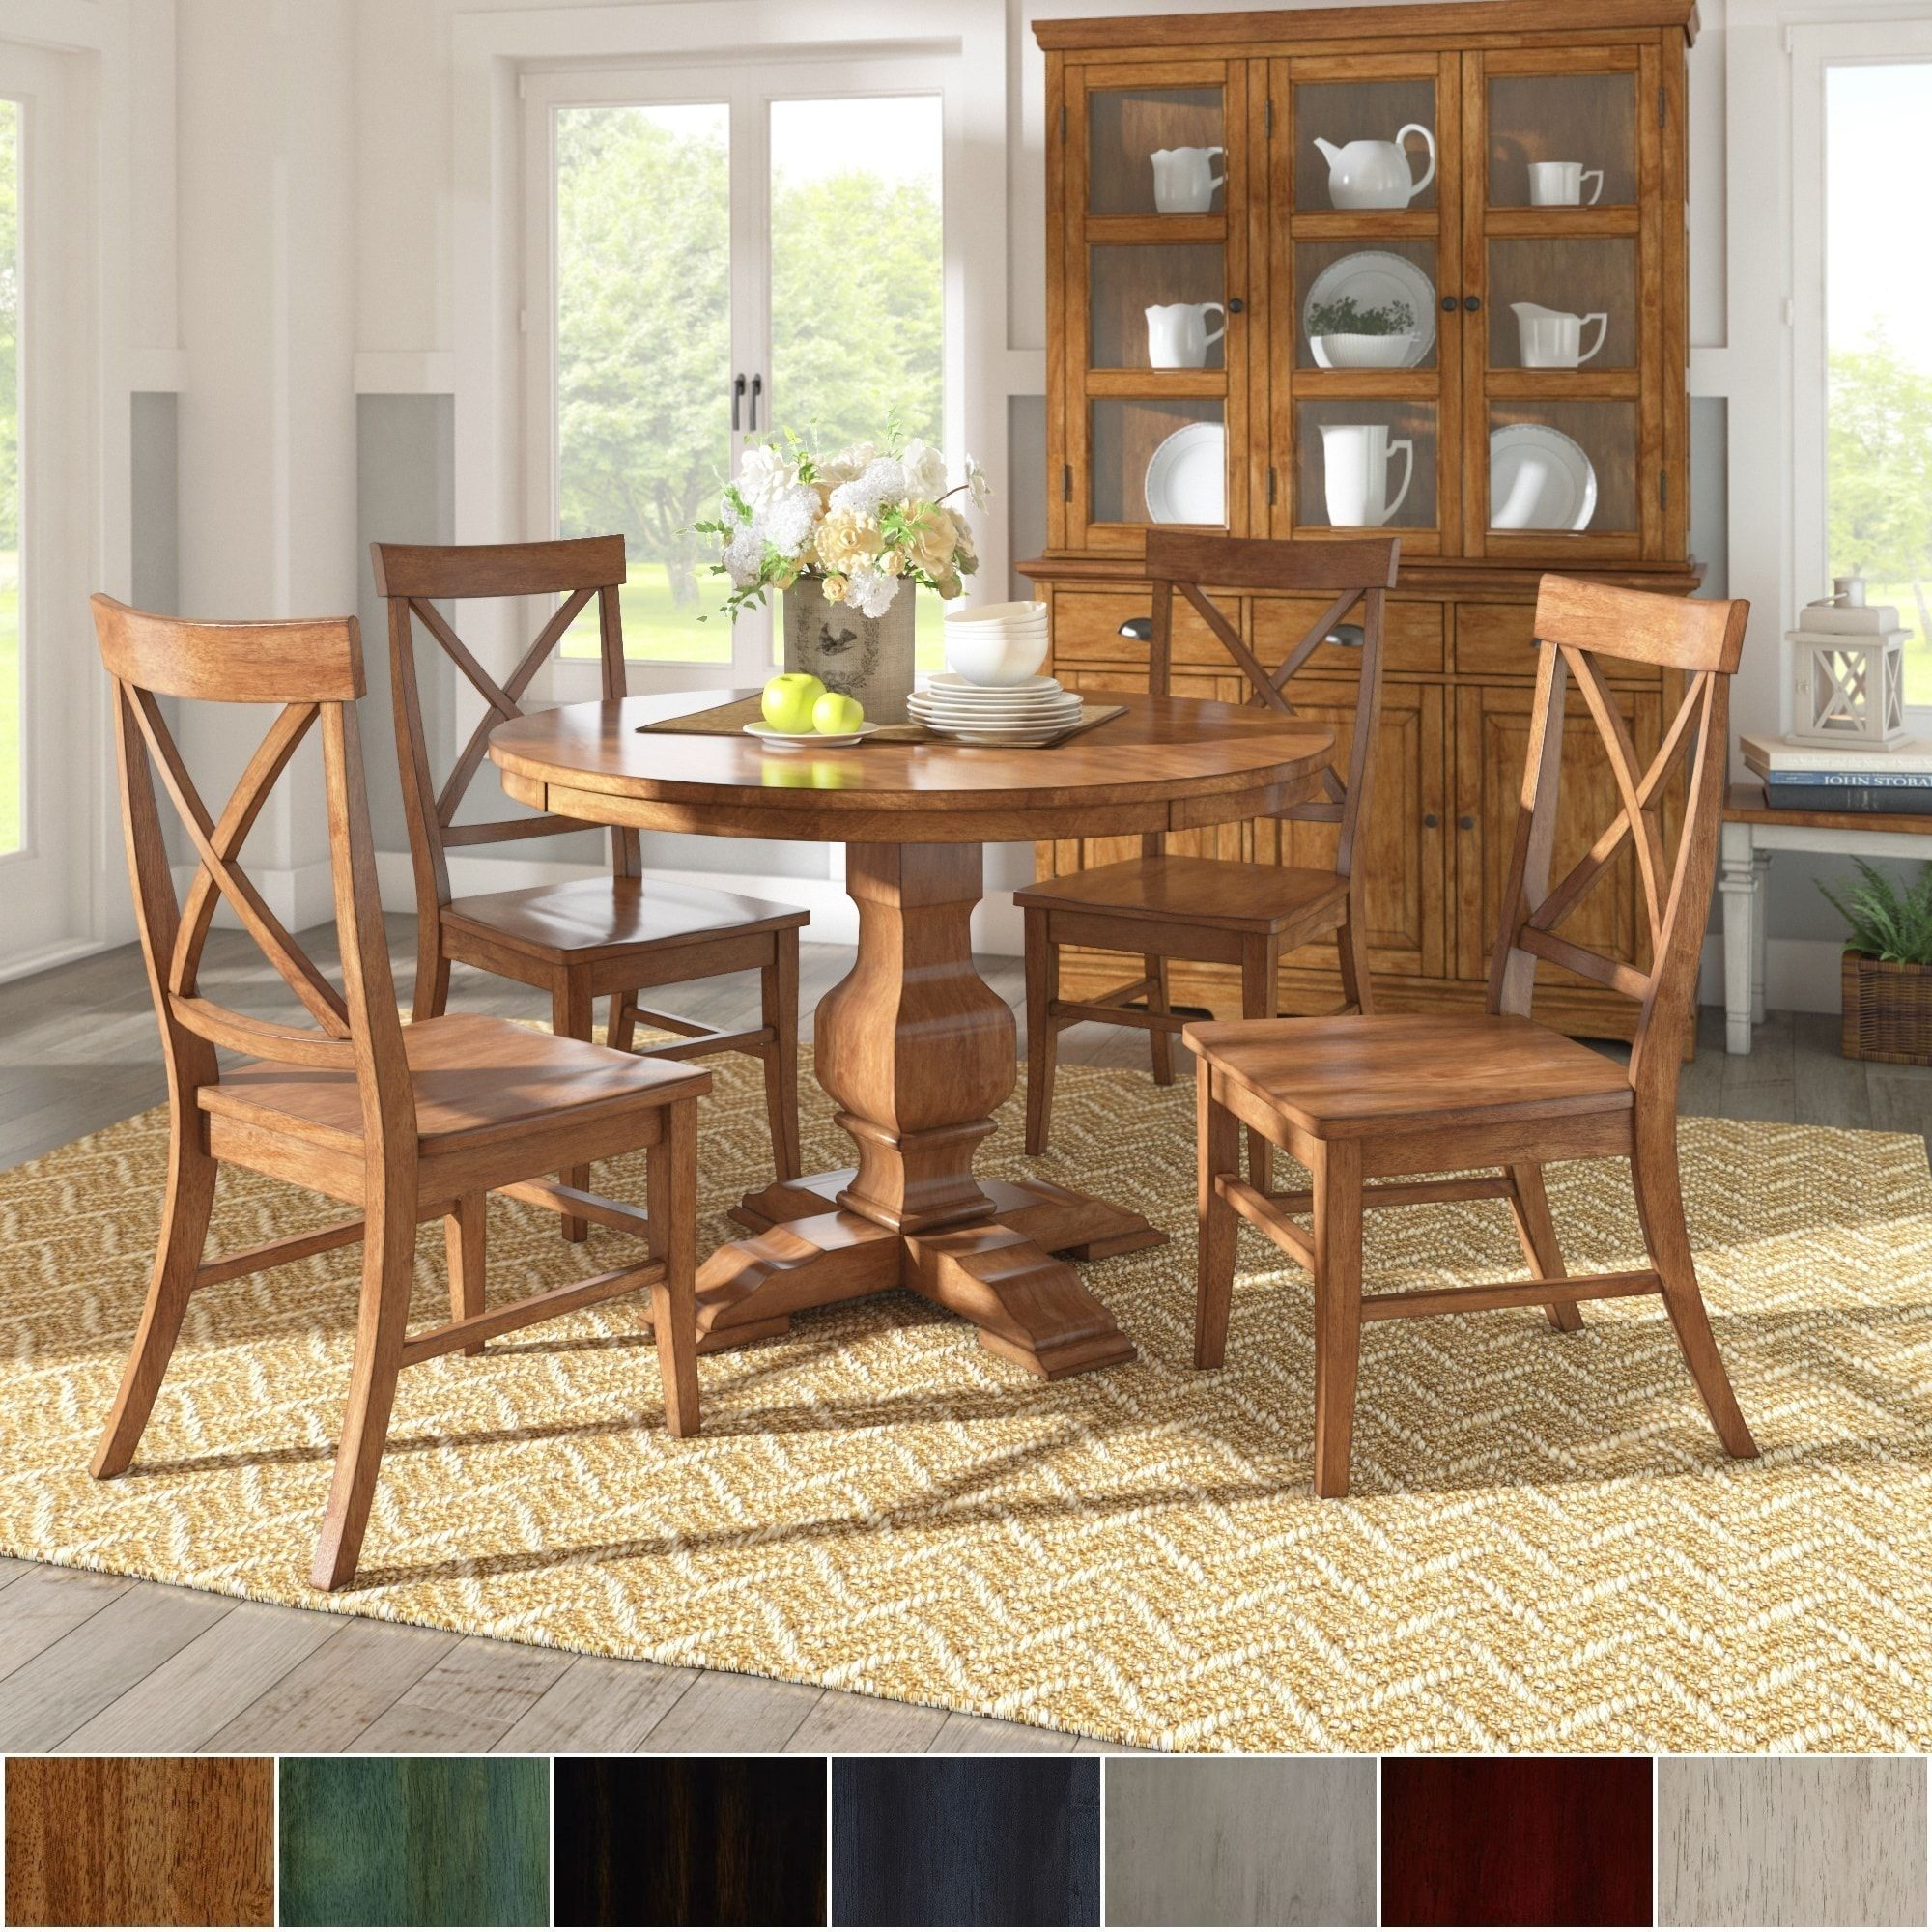 Latest Eleanor Oak Finish Wood 5 Piece Round Table X Back Chairs Dining Set Within Ephraim 5 Piece Dining Sets (View 11 of 20)